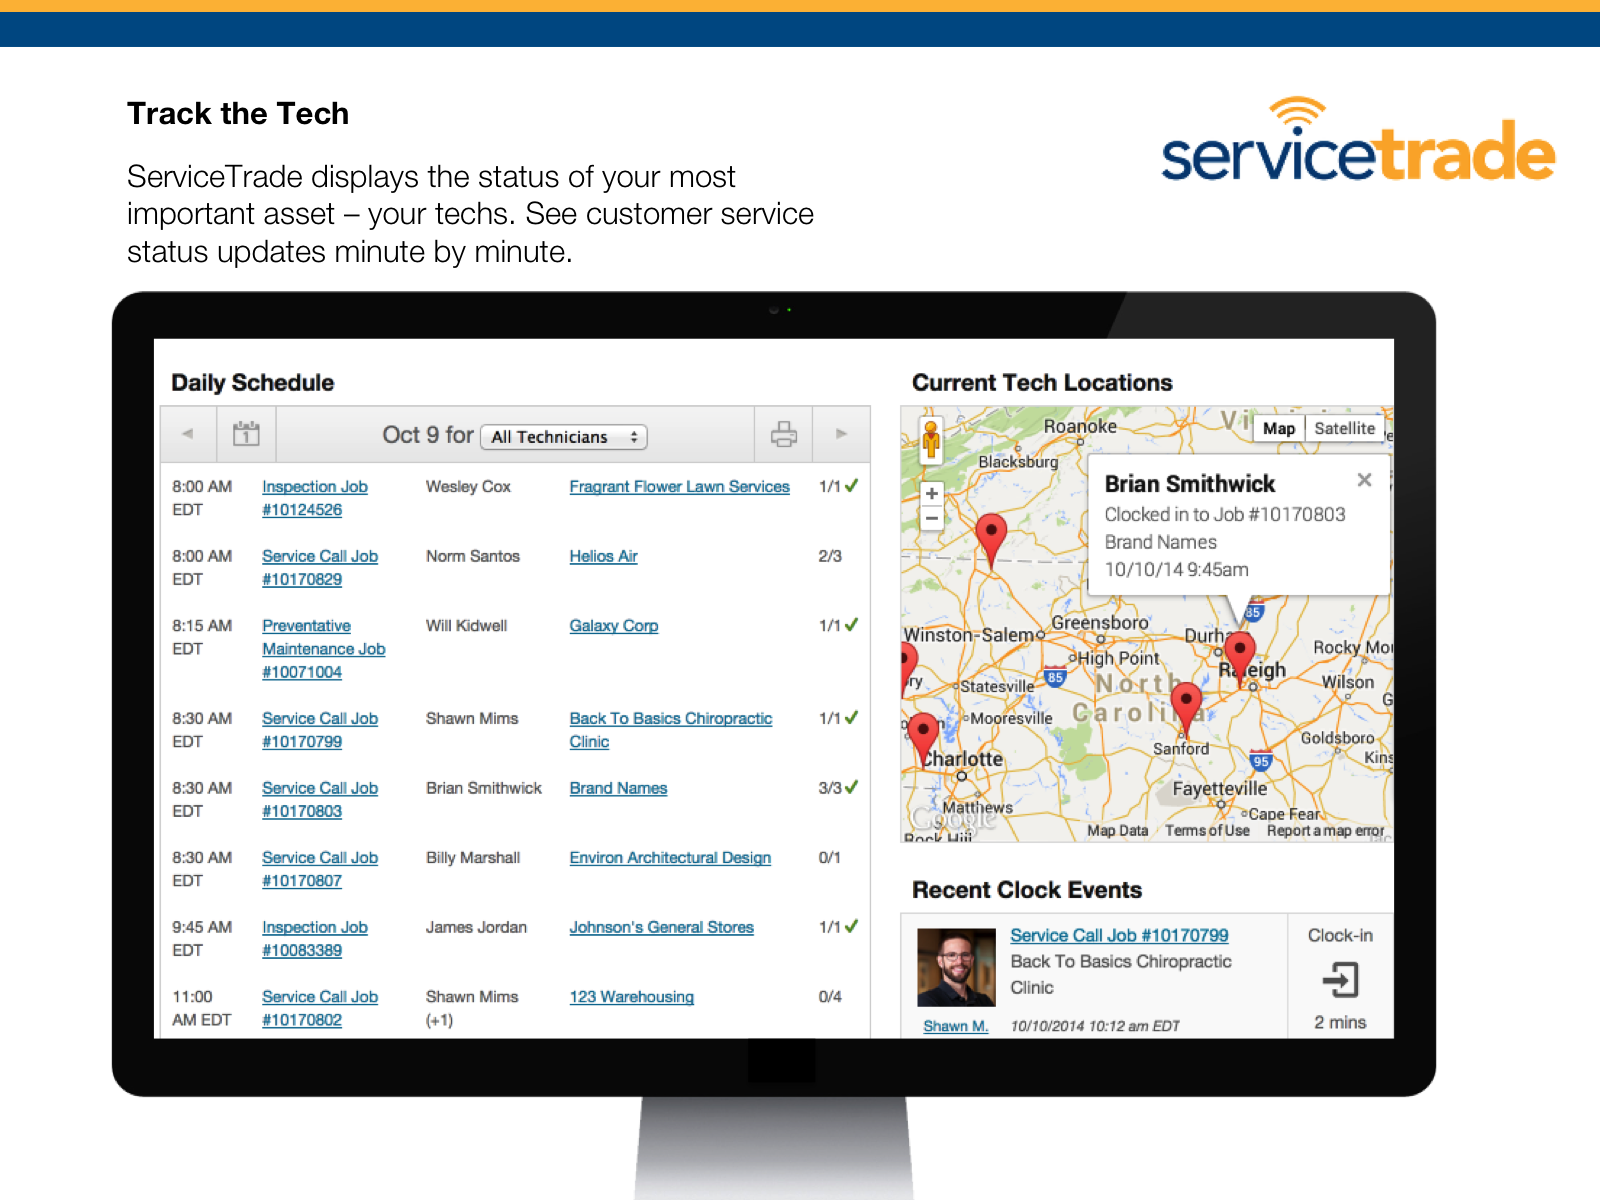 ServiceTrade Demo - Track the Tech